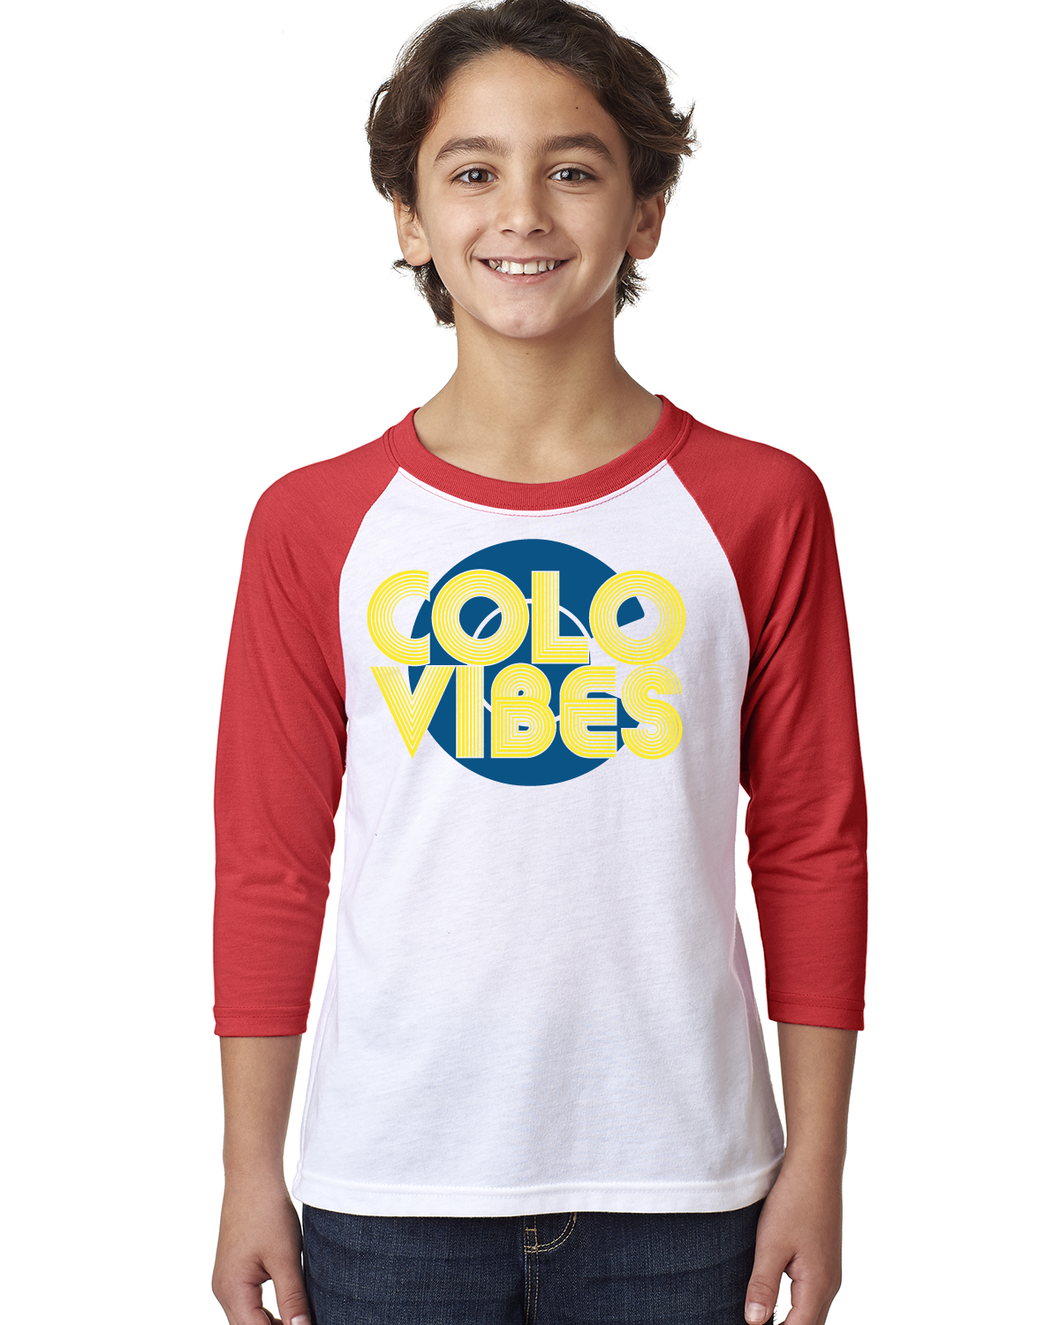 ColoVibes Youth- 3/4 Sleeve Raglan Tee